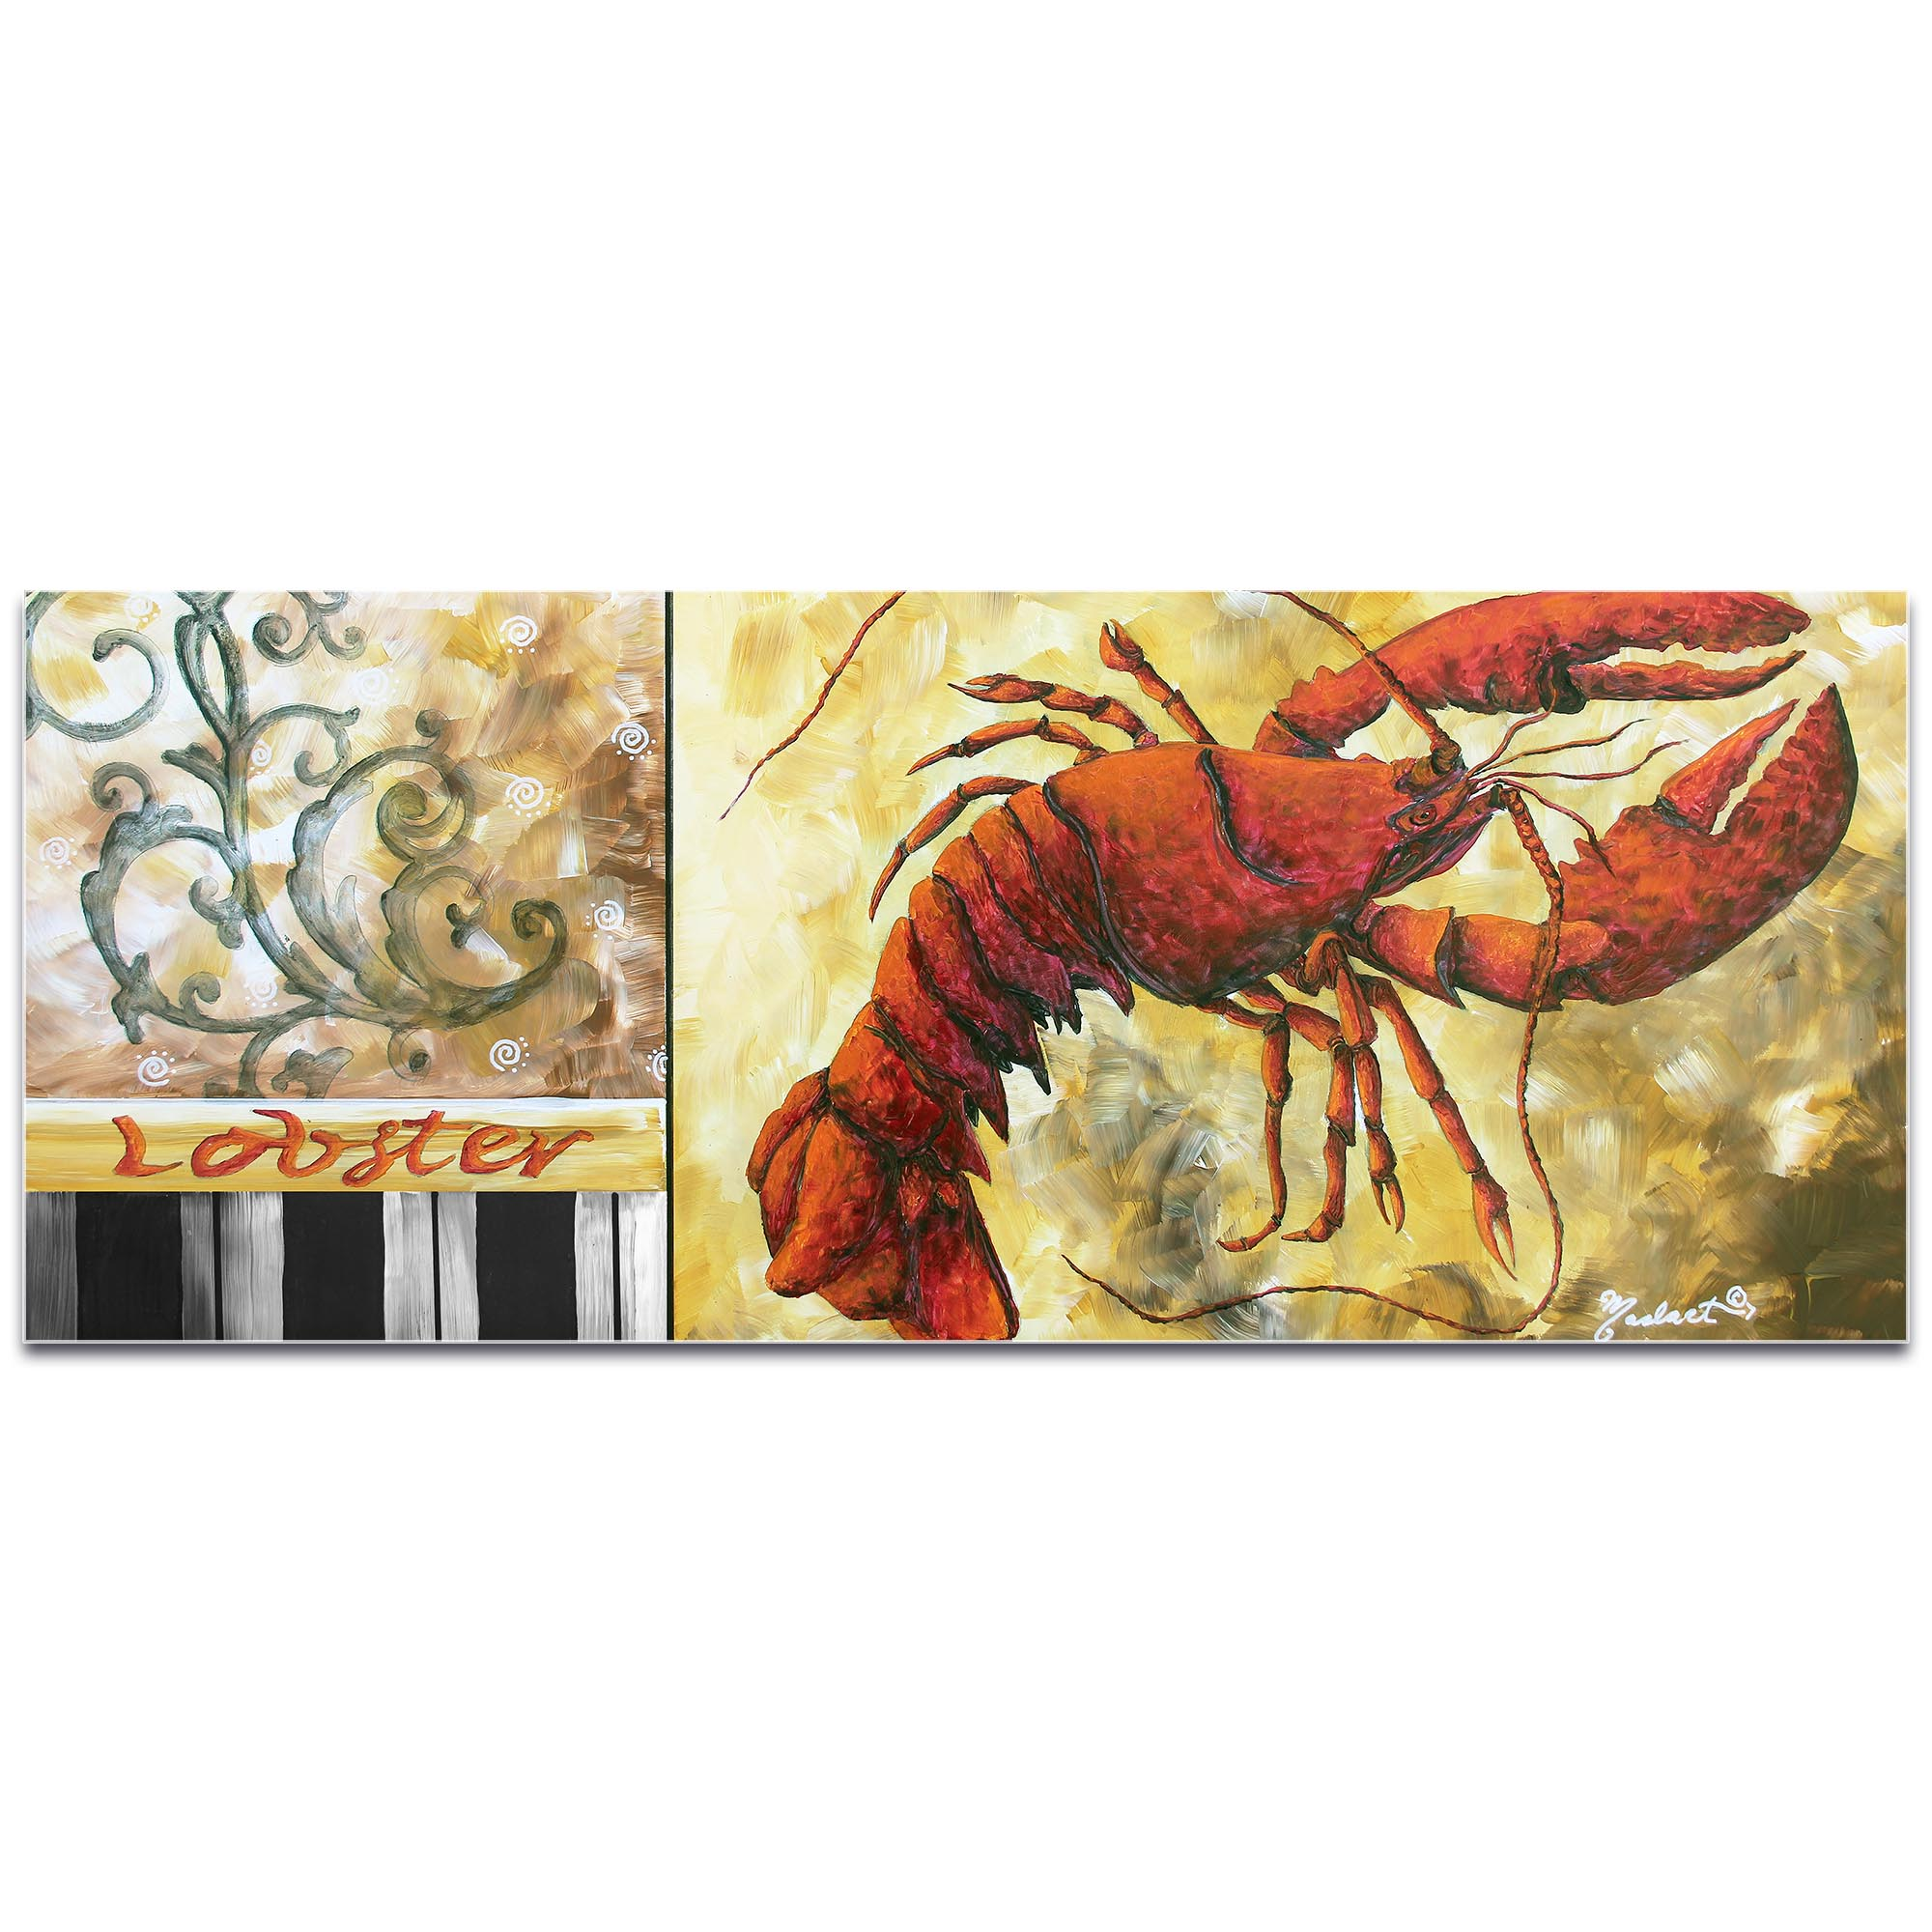 Luxury Lobster Wall Decor Pictures - The Wall Art Decorations ...